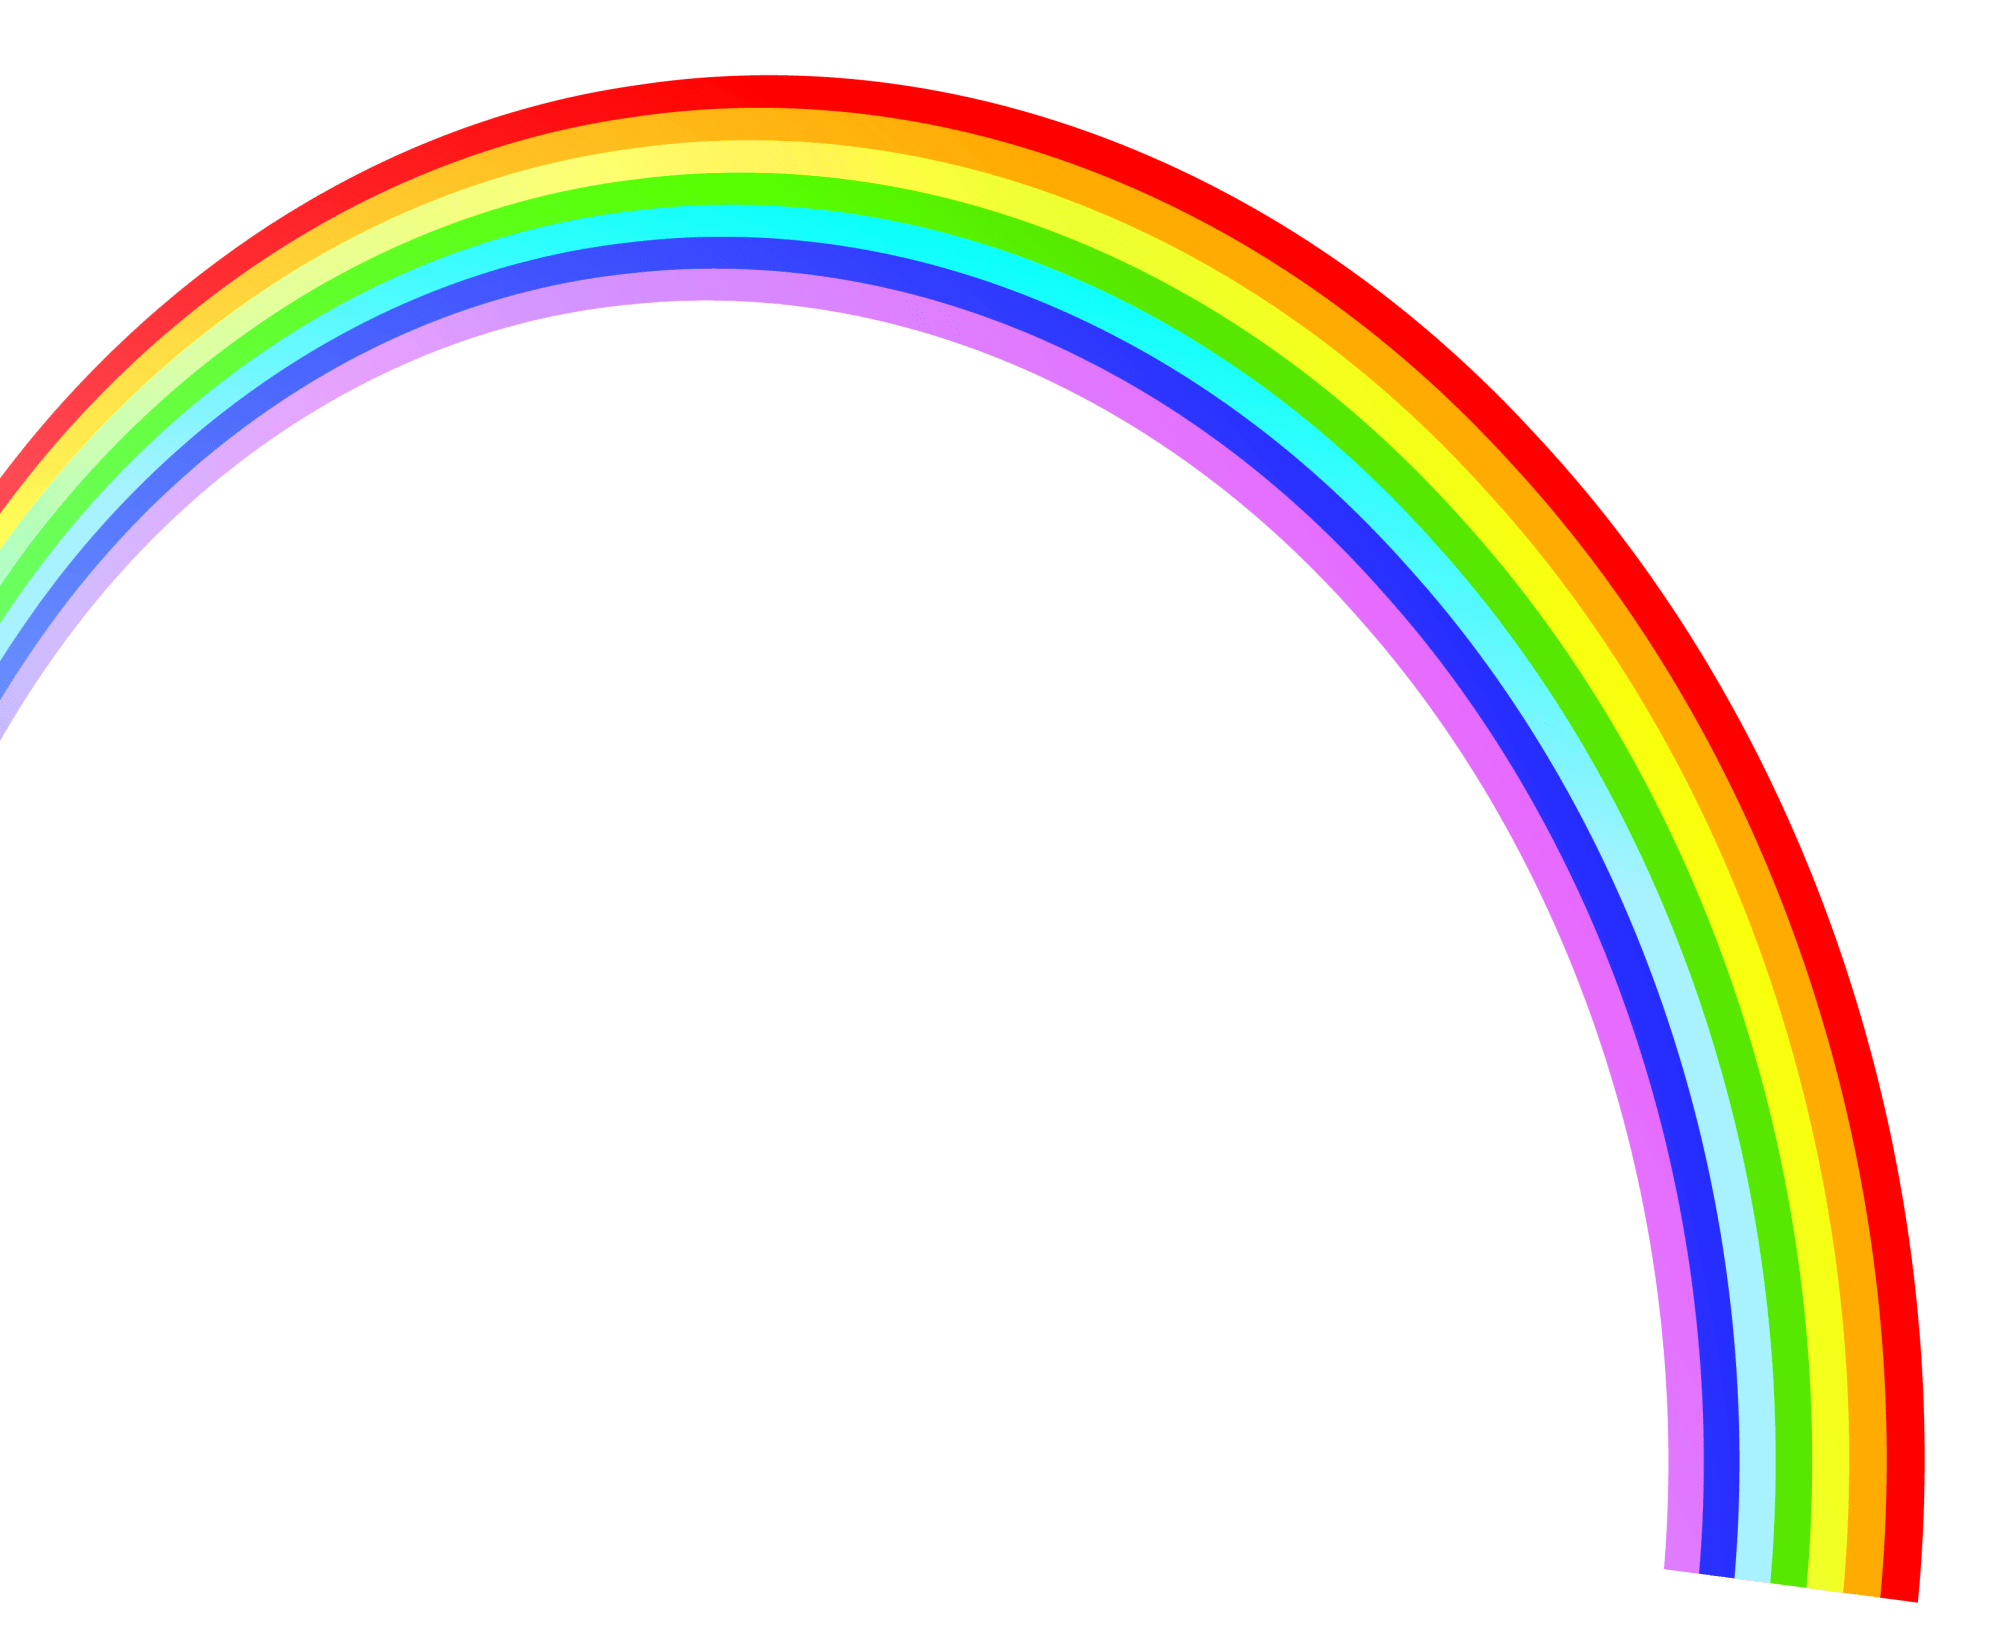 hight resolution of rainbow clipart clipart cliparts for you 4